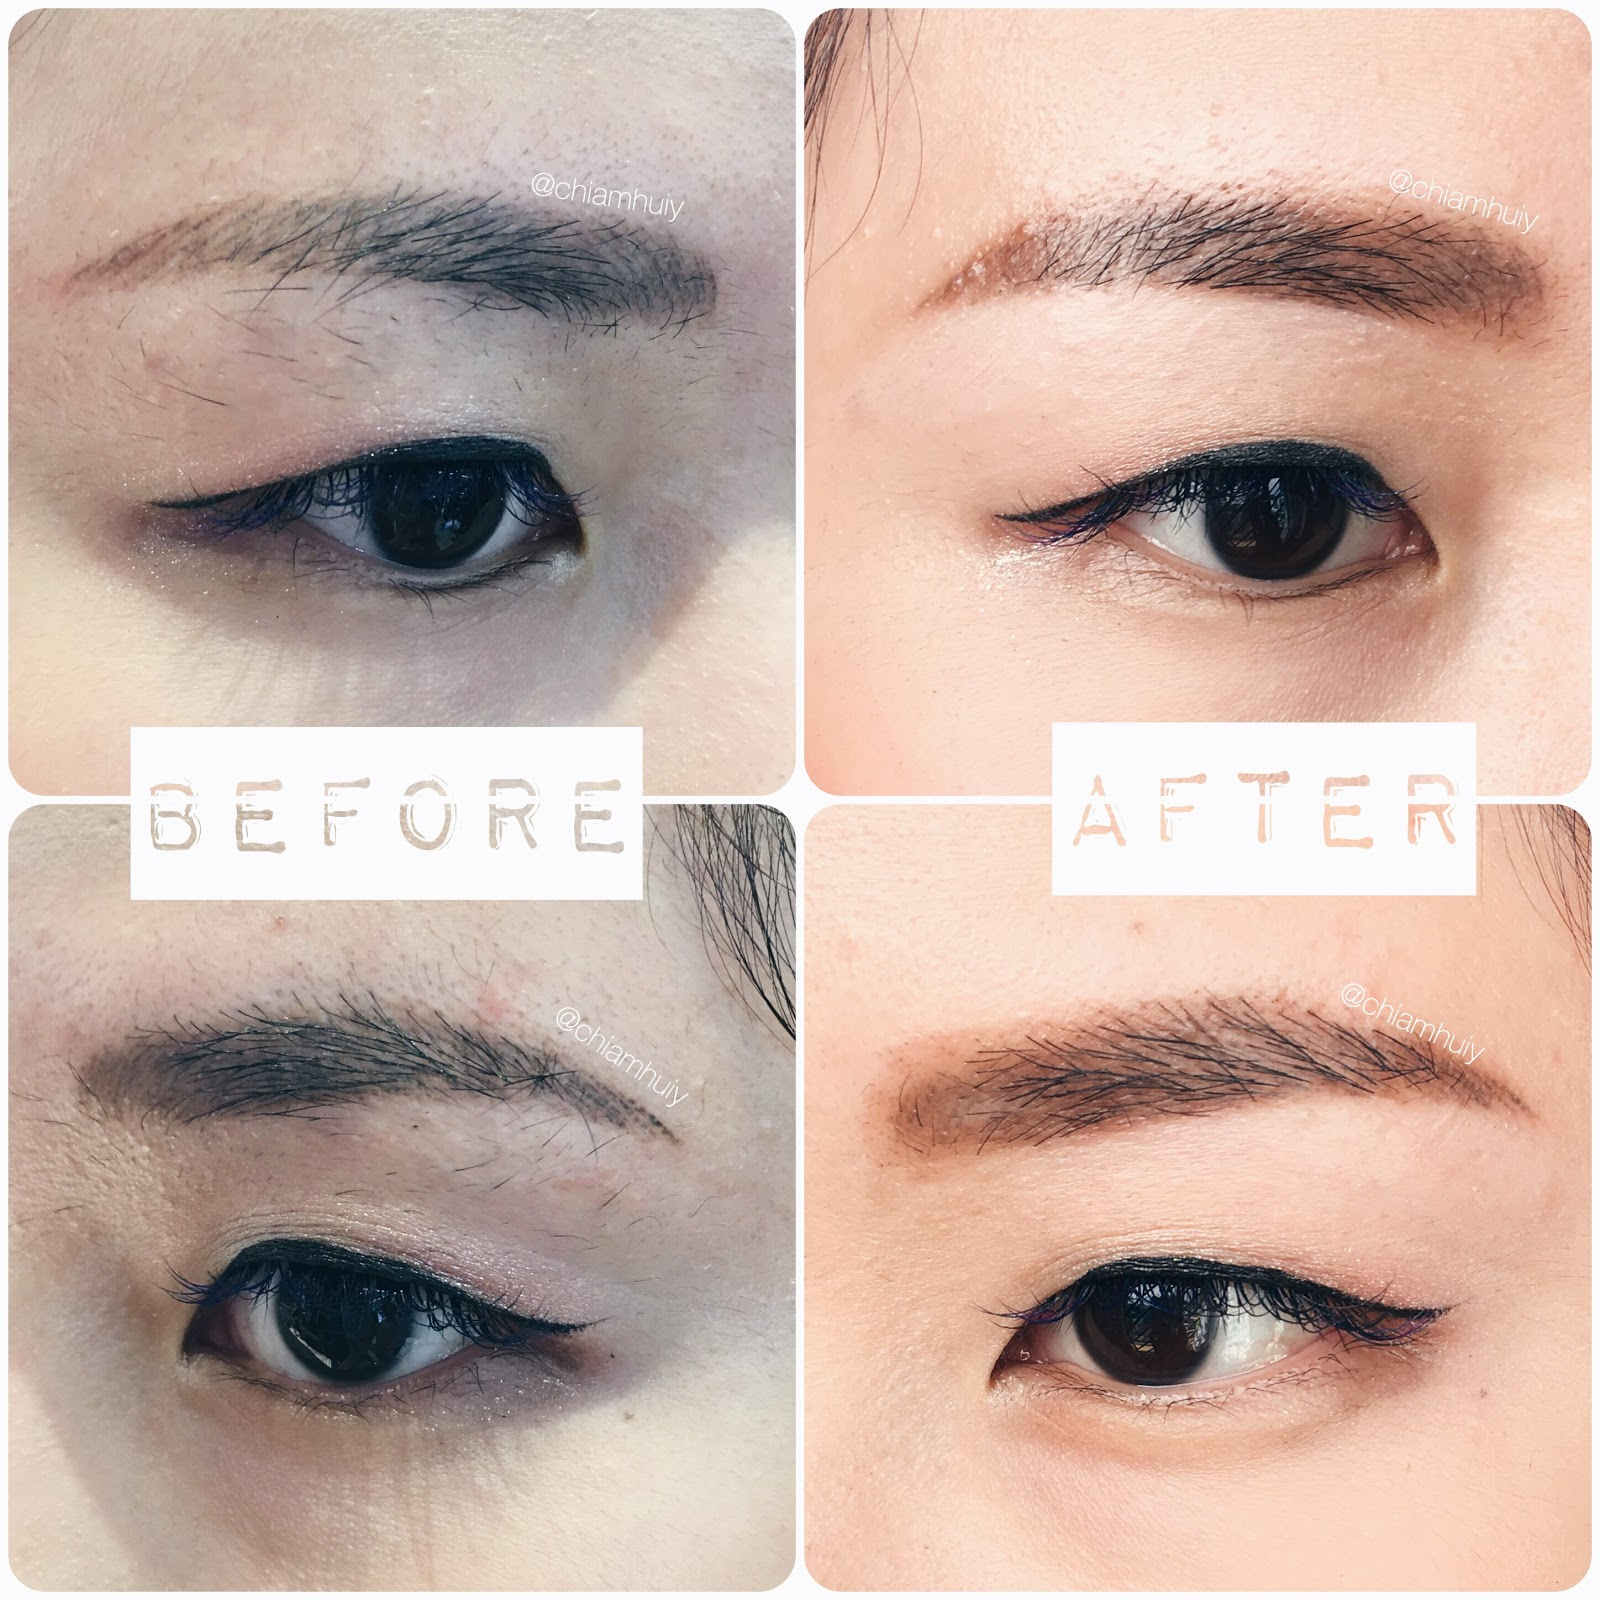 Benefit Brow Bar Faq For Brow Waxing Celine Chiam Singapore